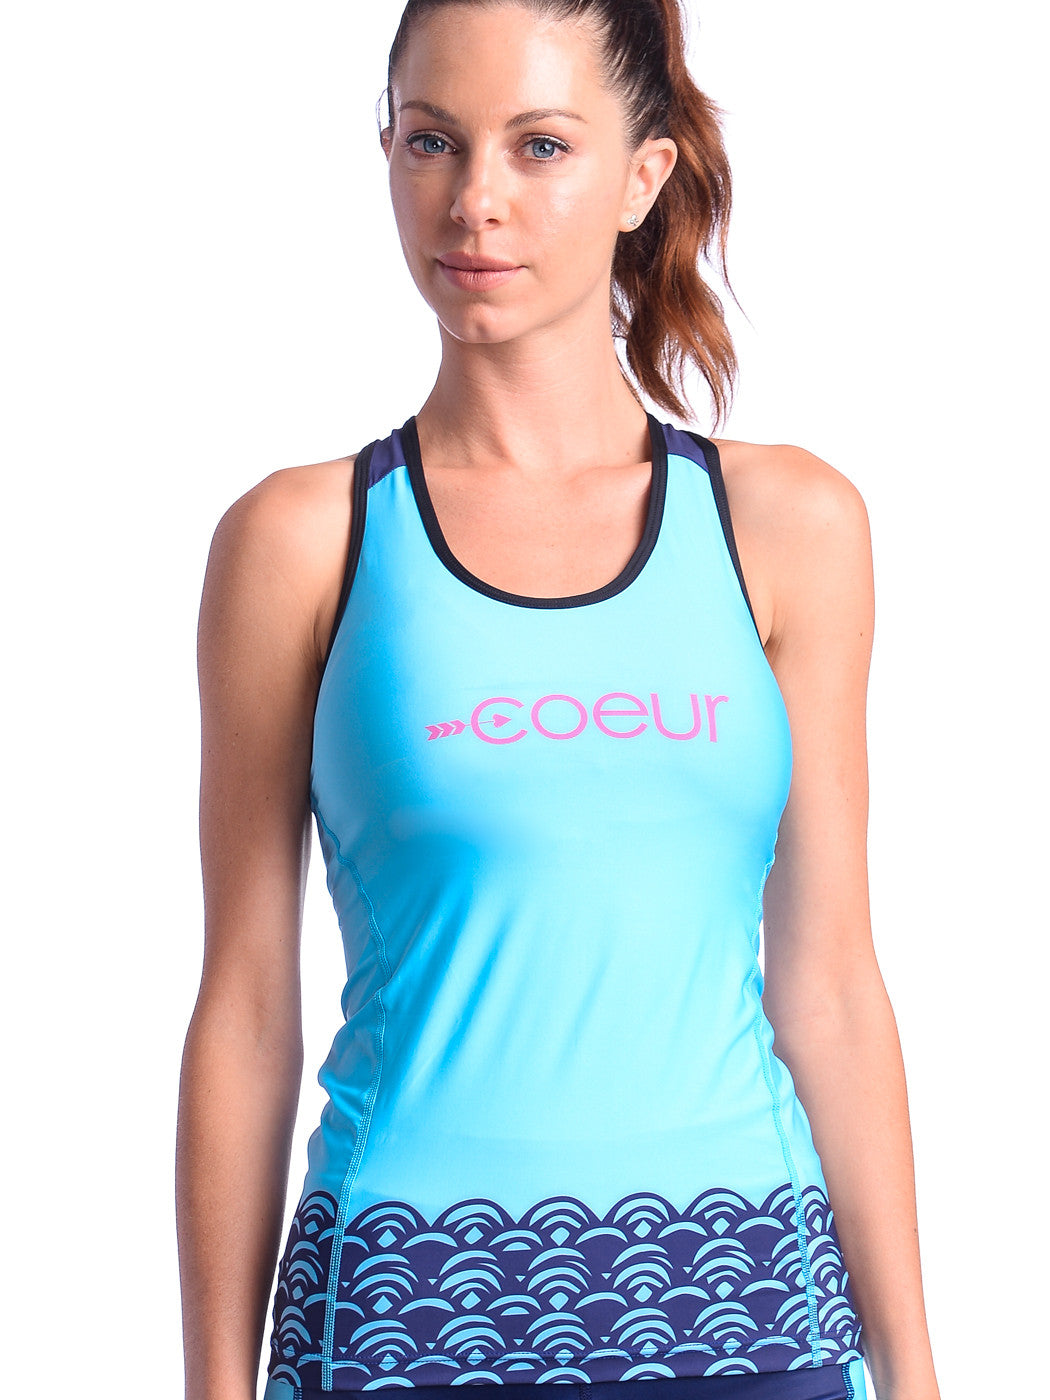 Coeur Hapuna Tri Top - Women's